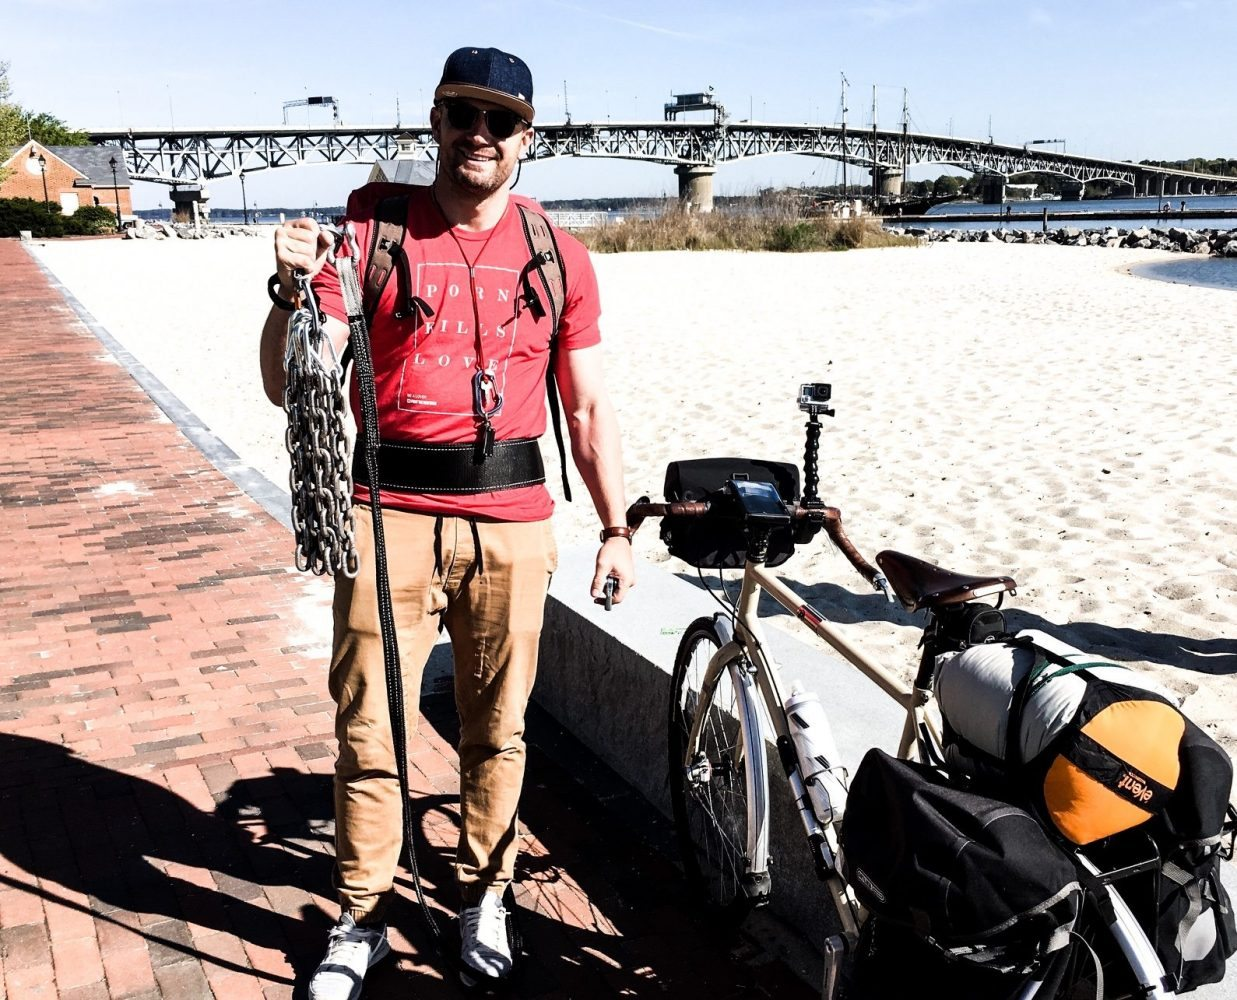 WATCH: Man Biked 3,800 Miles Across The U.S. to Raise Awareness on Porn's Harms